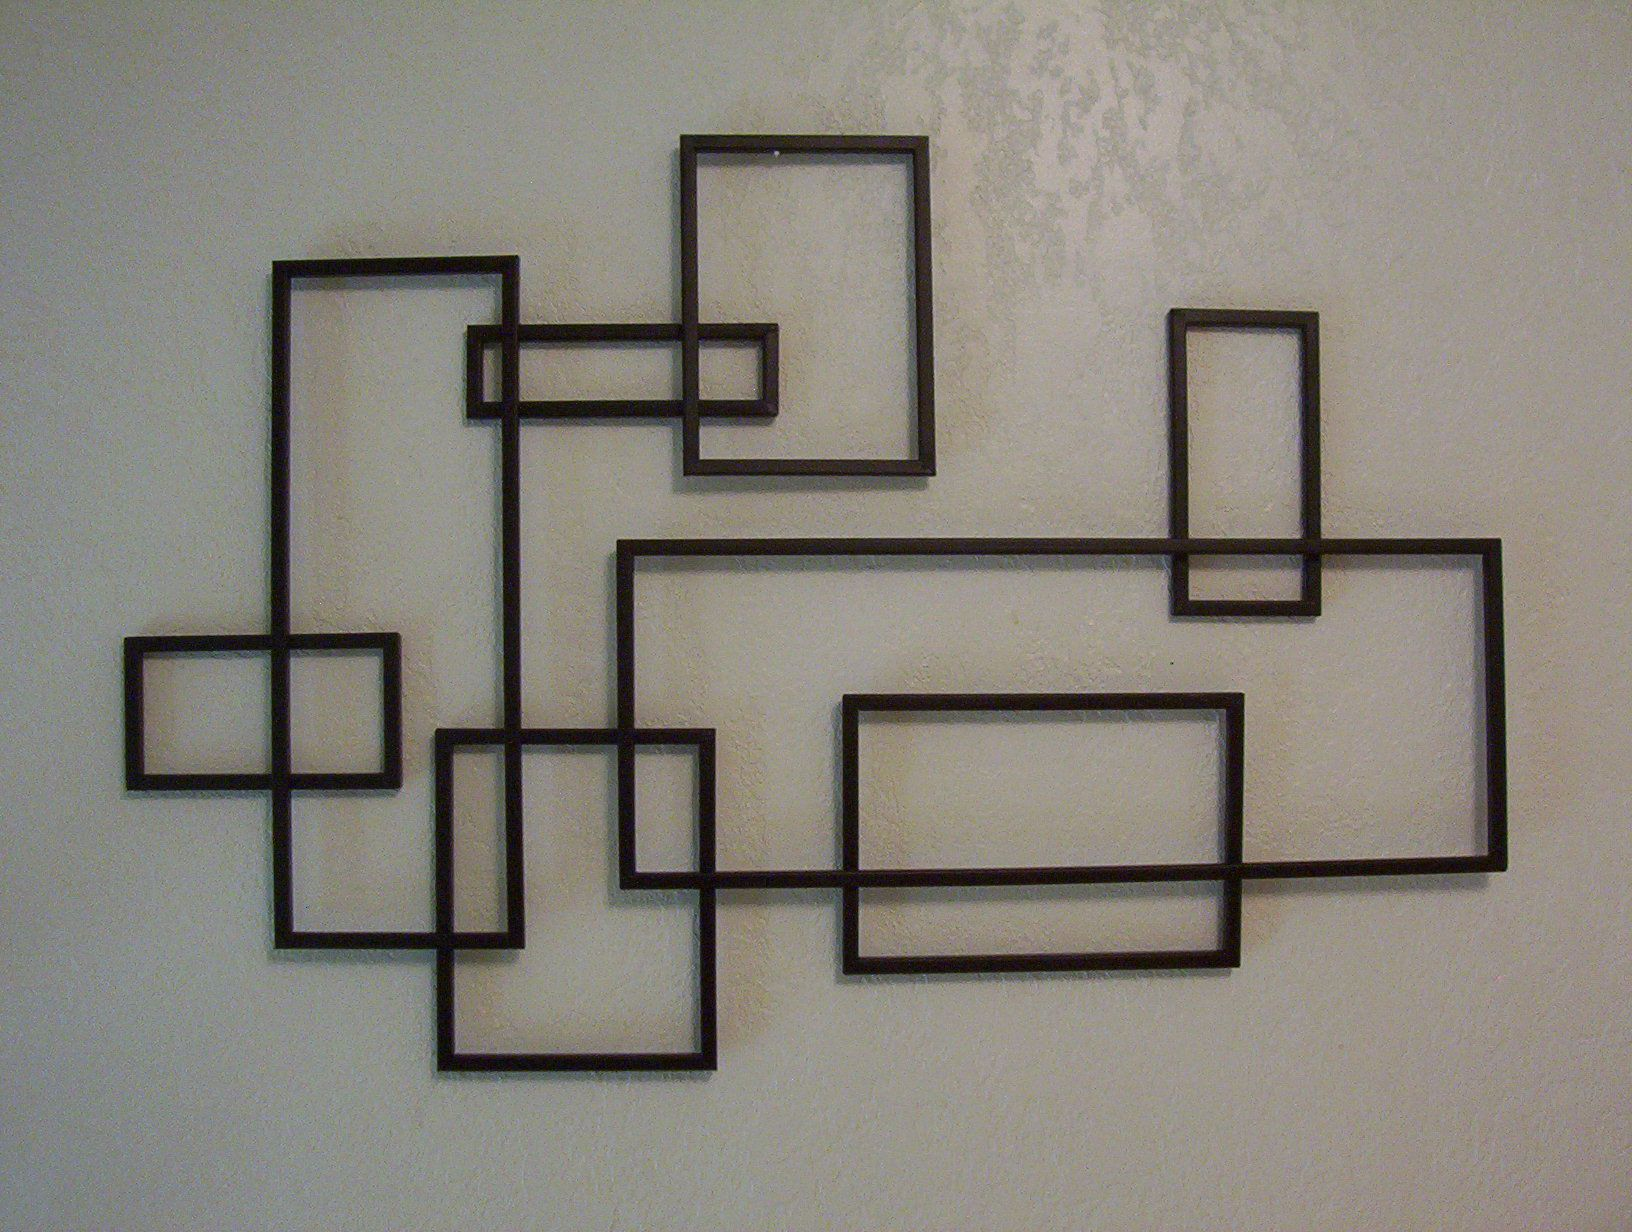 Mid century modern de stijl style geometric metal wall sculpture de stijl inspired mid century modernistic metal wall sculpture amipublicfo Choice Image